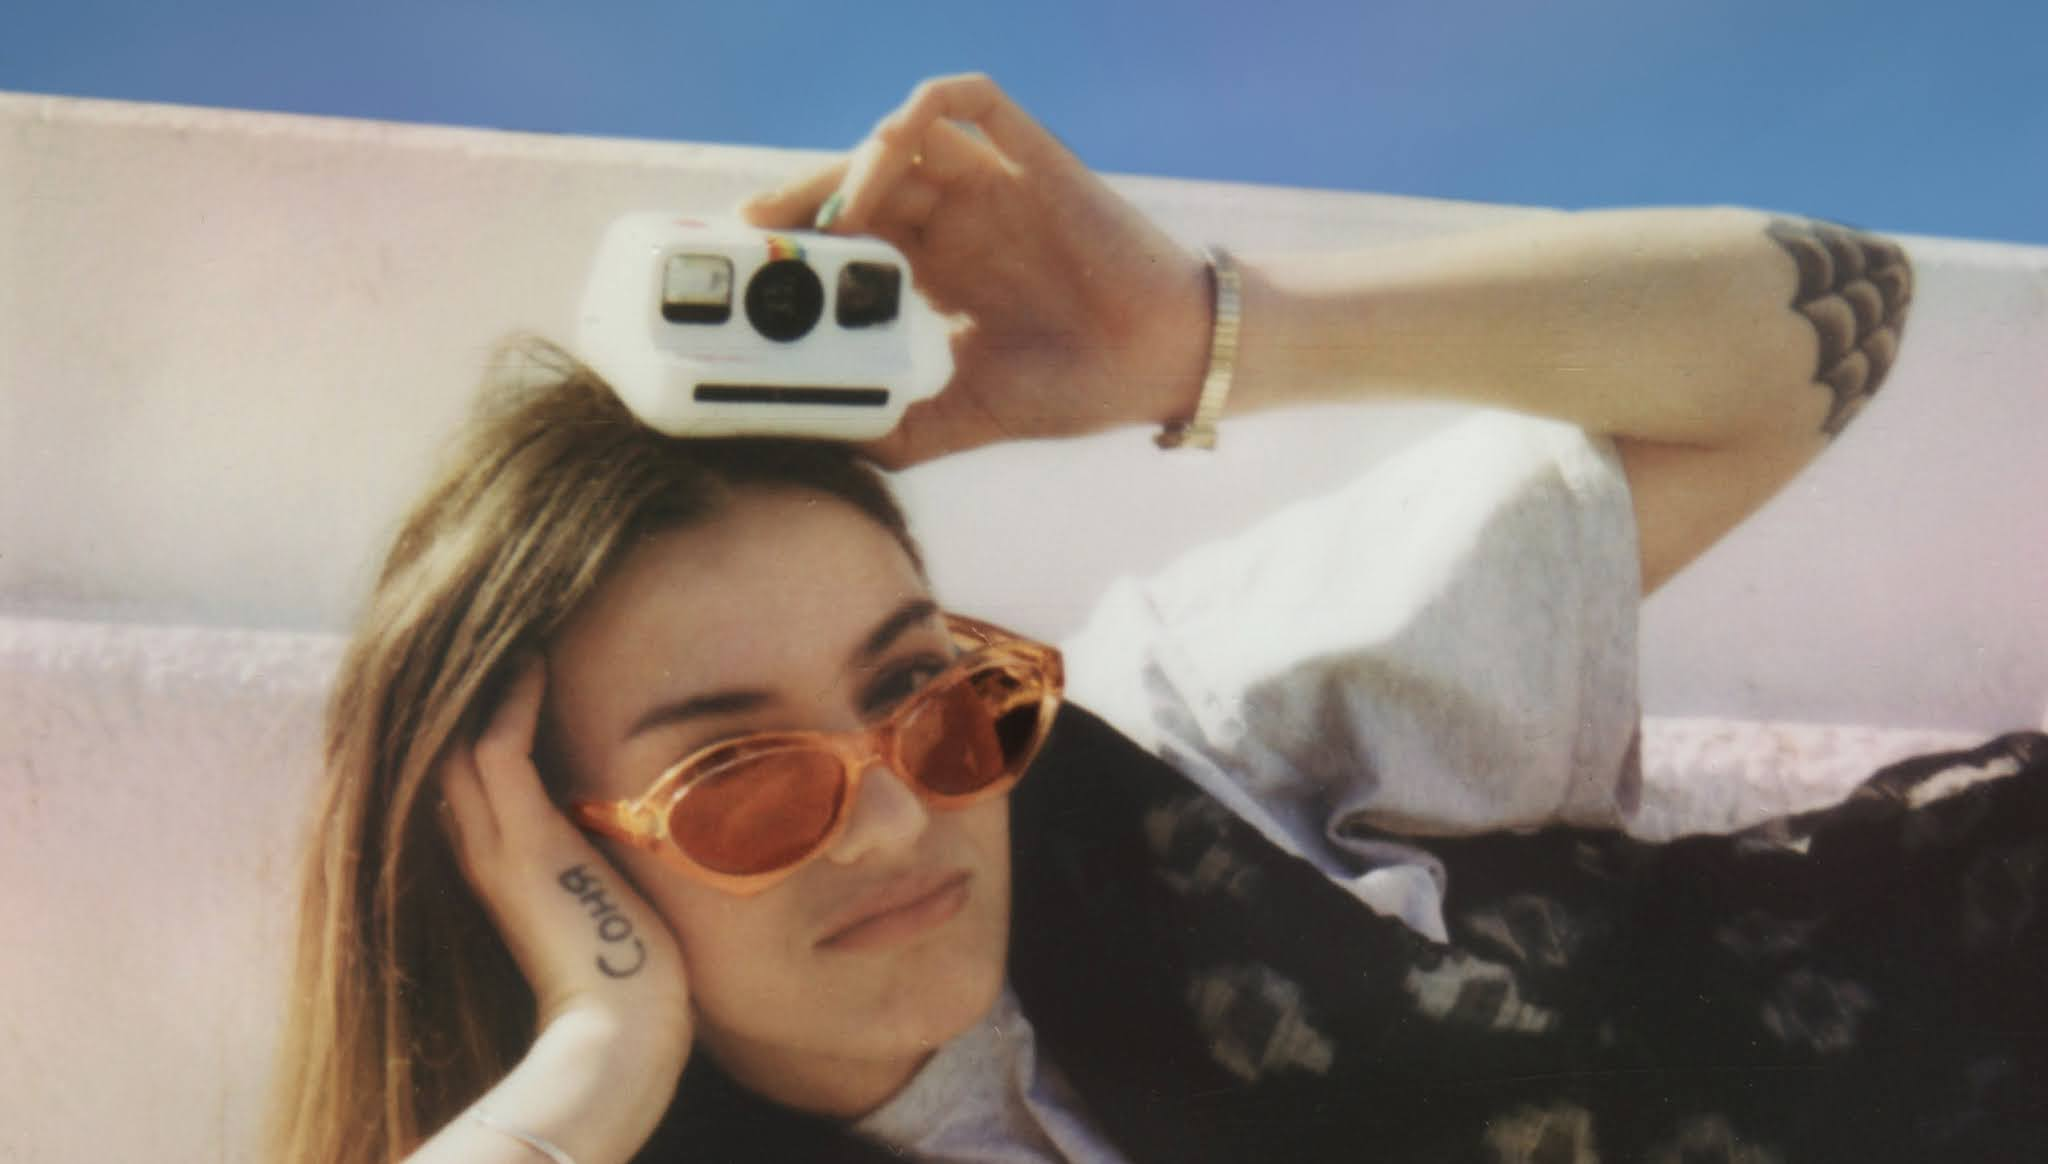 Introducing Polaroid Go: The World's Smallest Analog Instant Camera